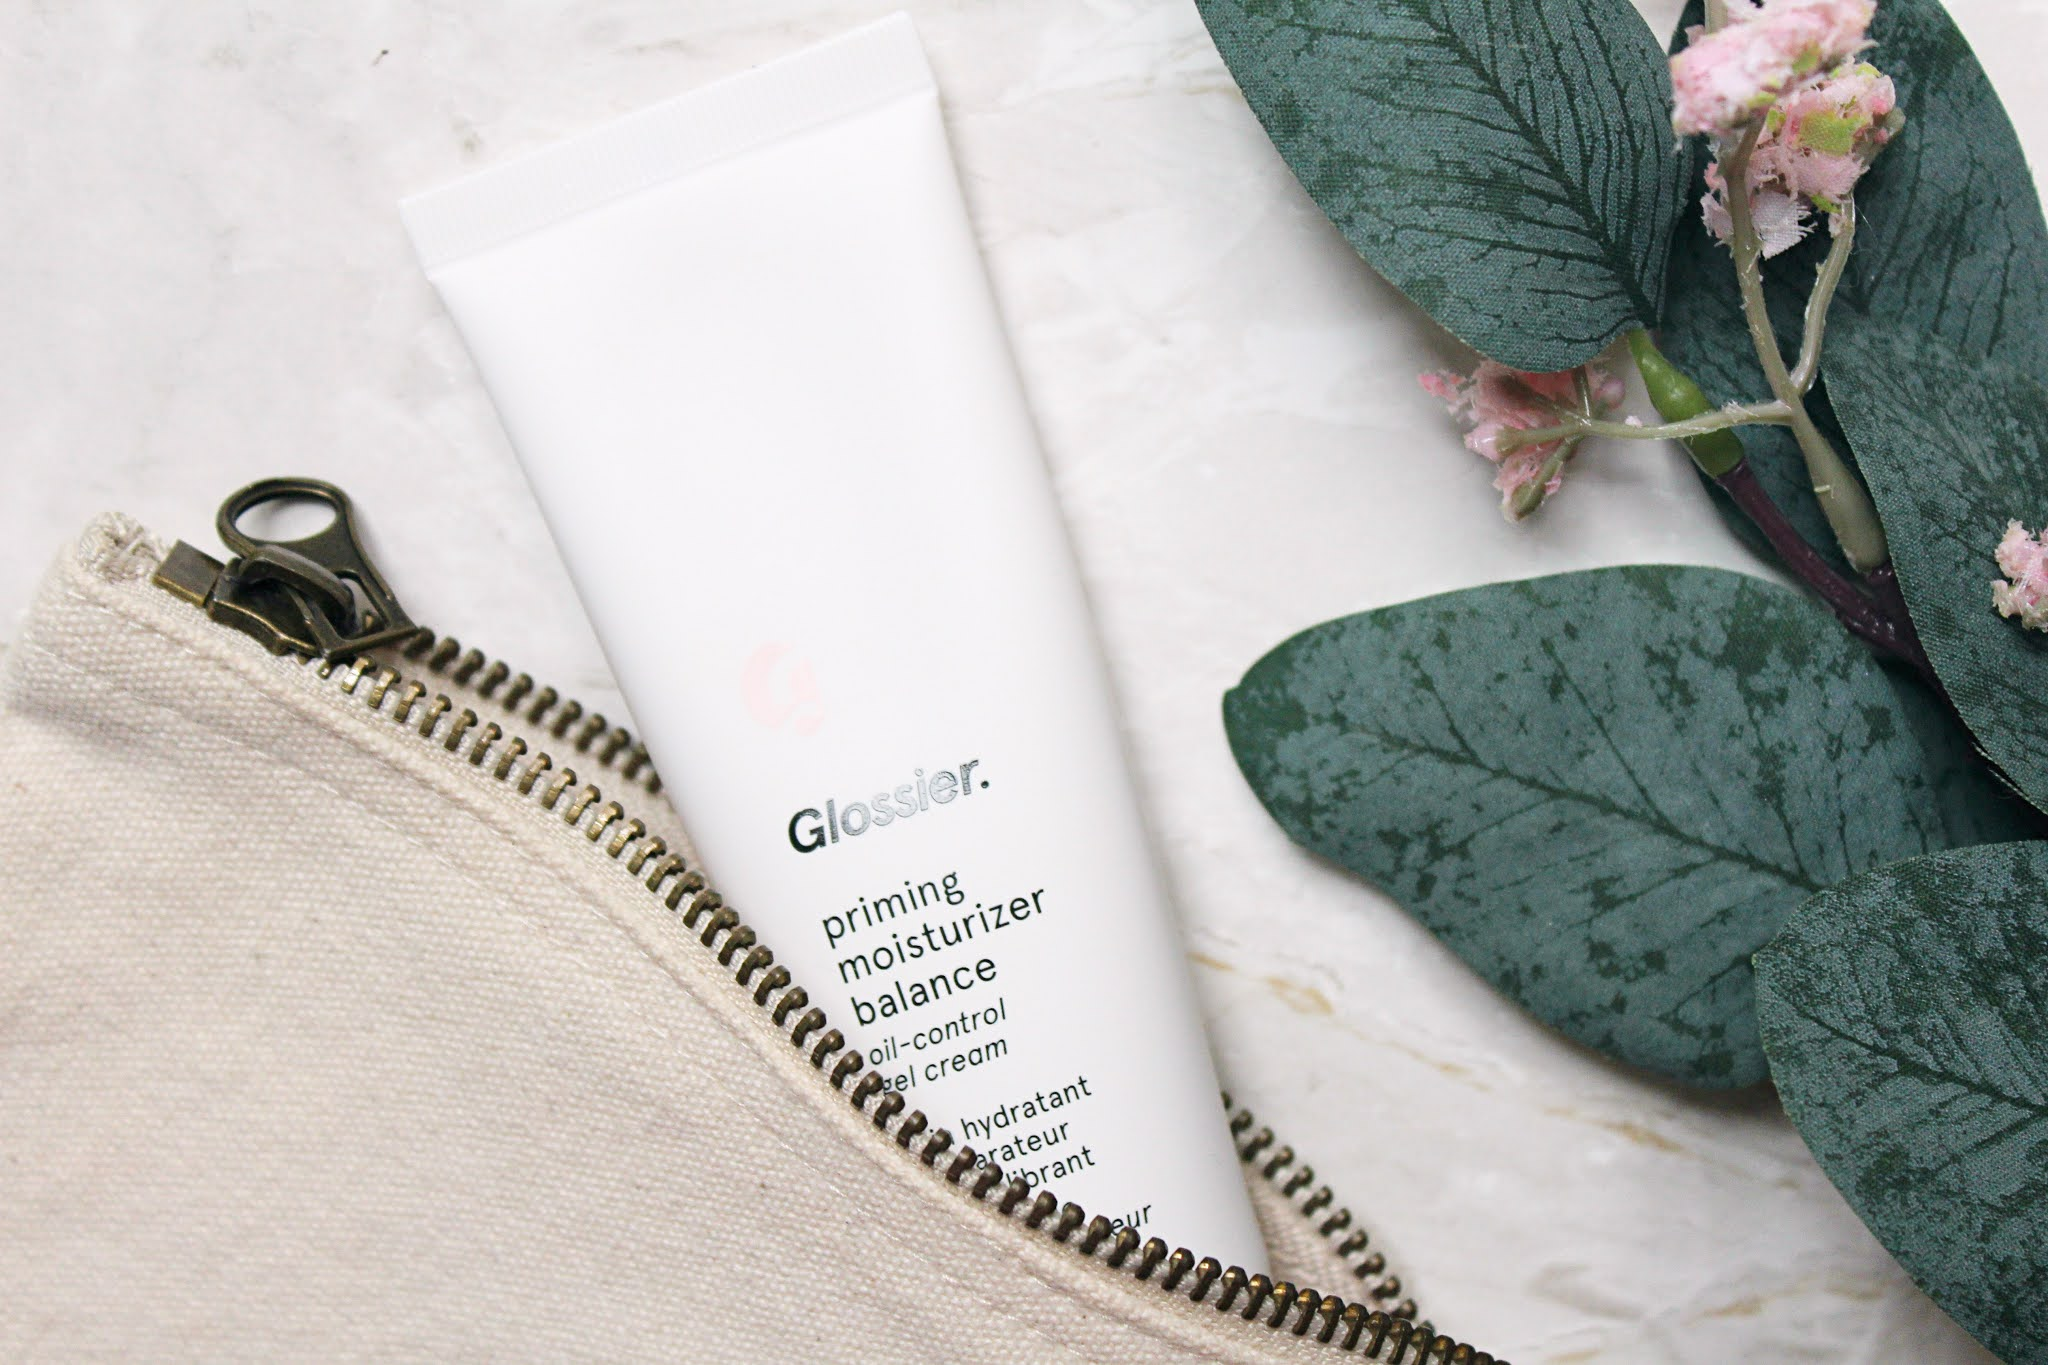 Glossier Priming Moisturizer Balance Review (+ Discount Code)